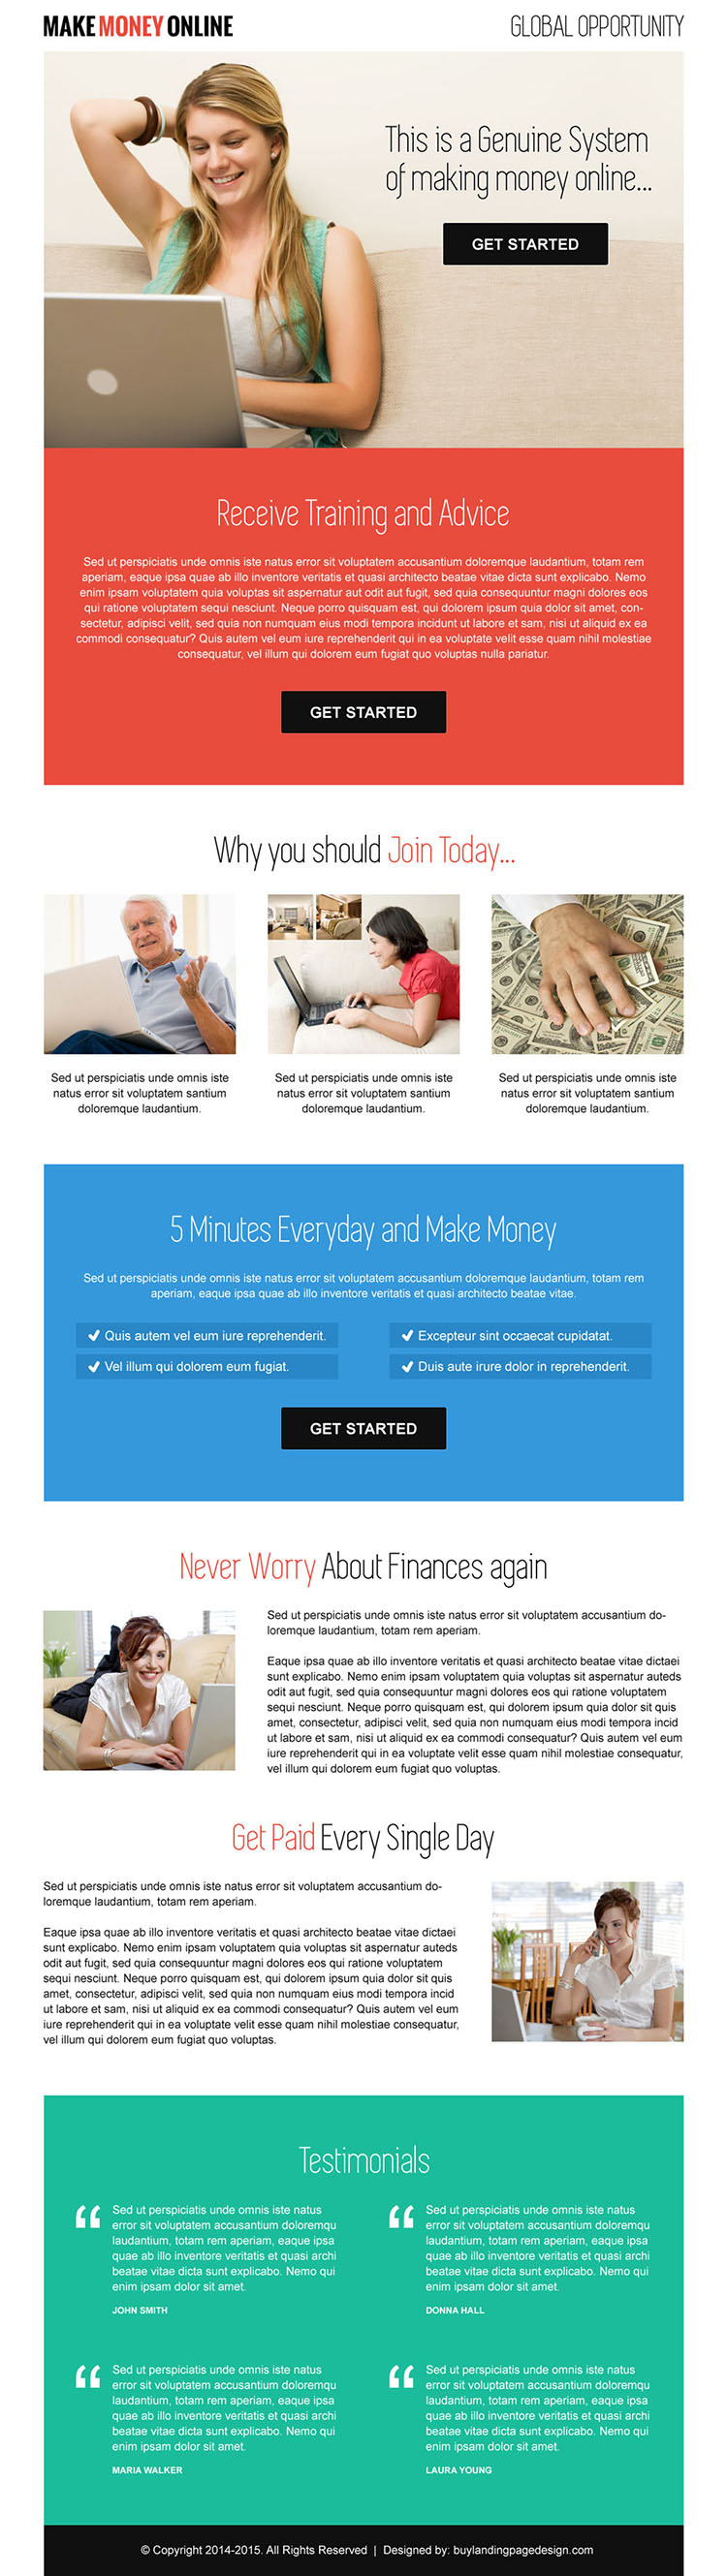 clean and professional call to action make money online landing page design template